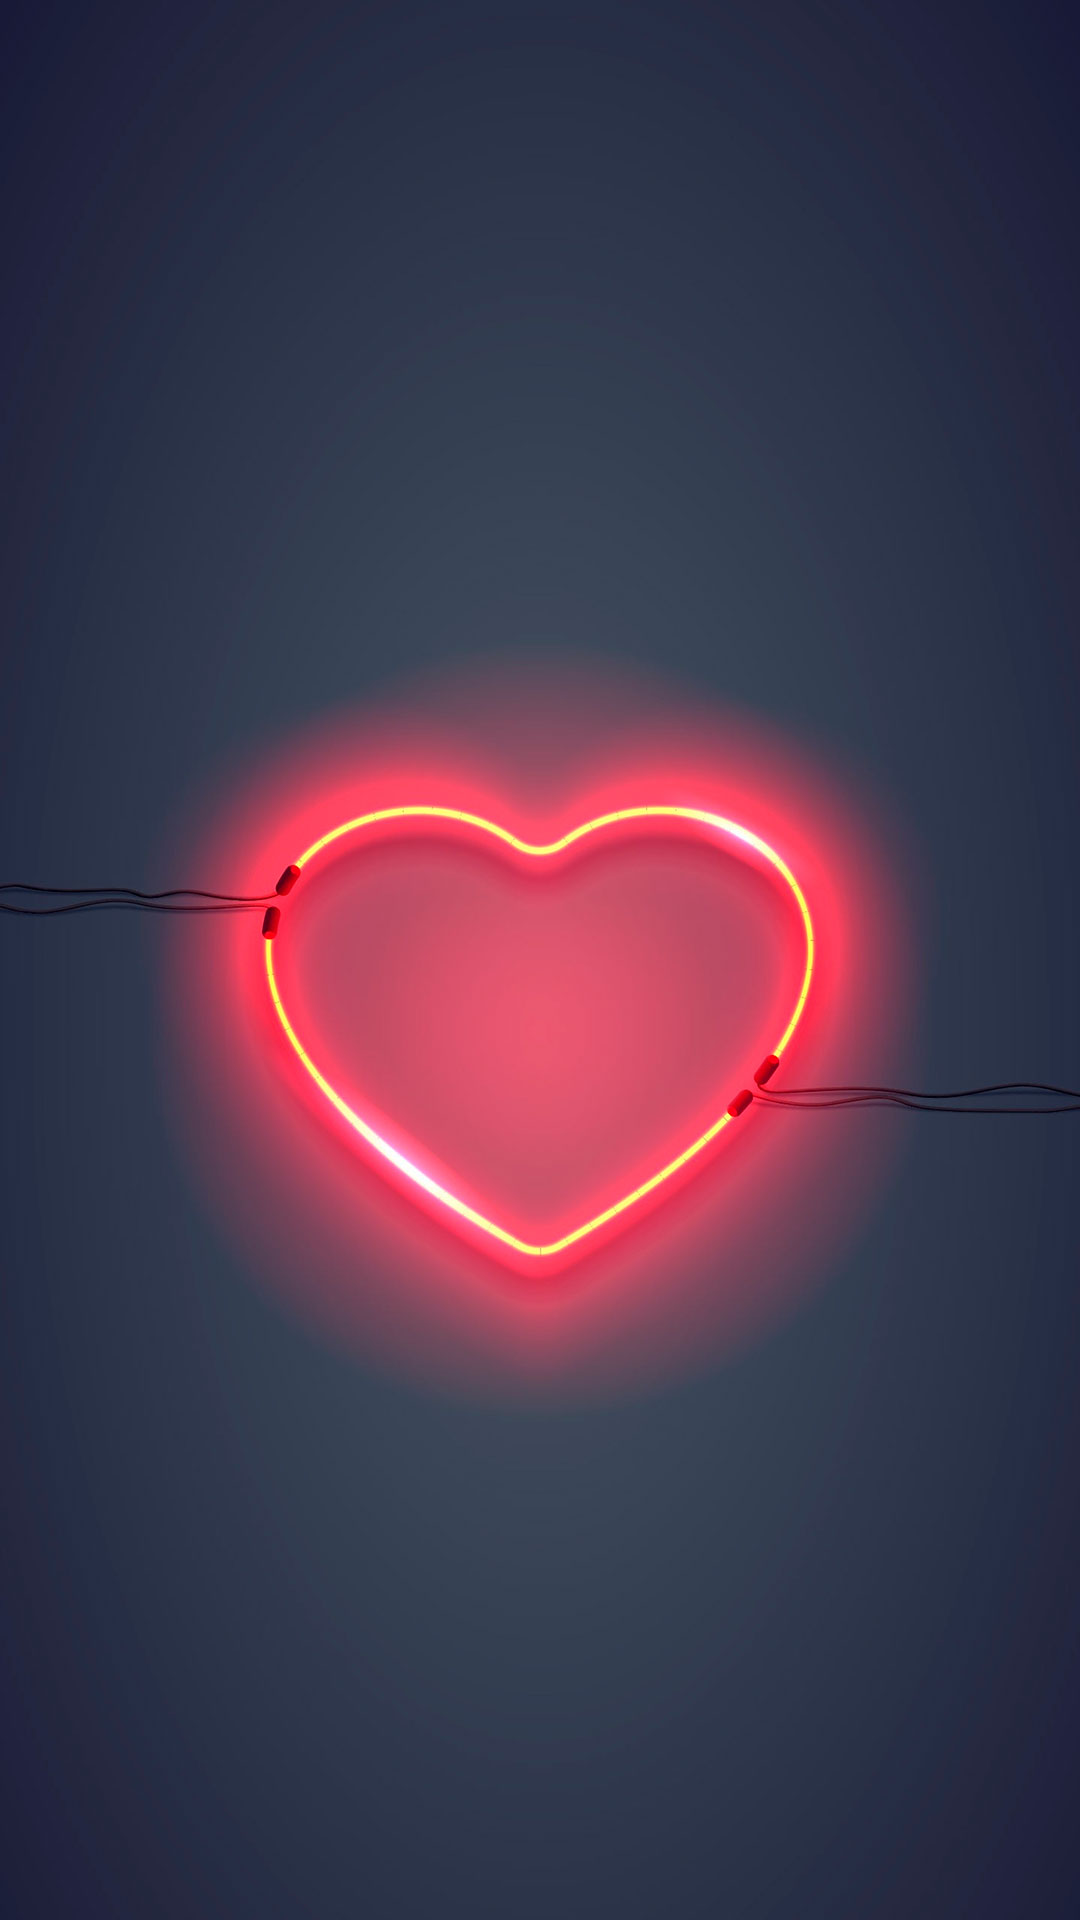 iPhone wallpaper neon sign heart Fonds d'écran iPhone du 09/05/2018